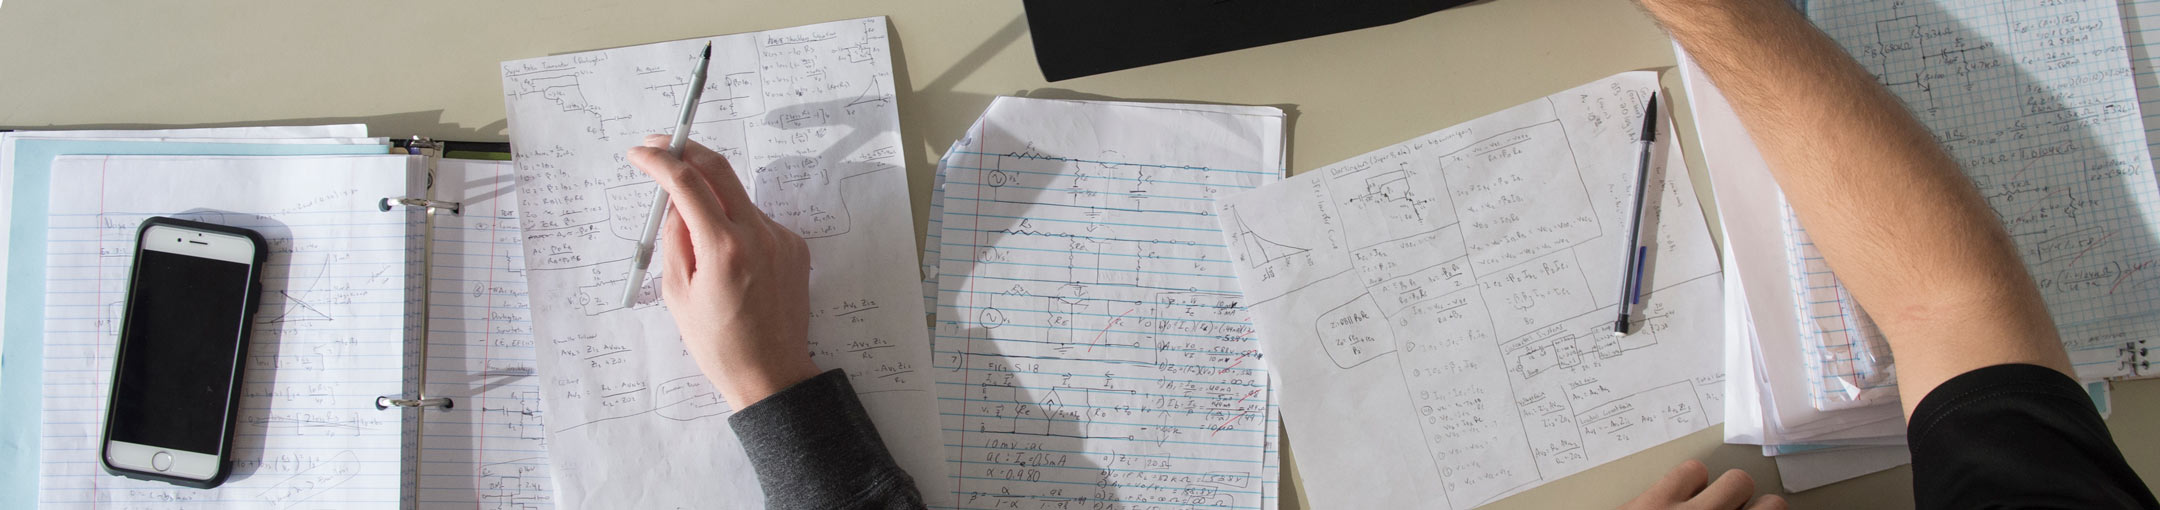 A closeup of two people working on solving math problems in their notebooks.